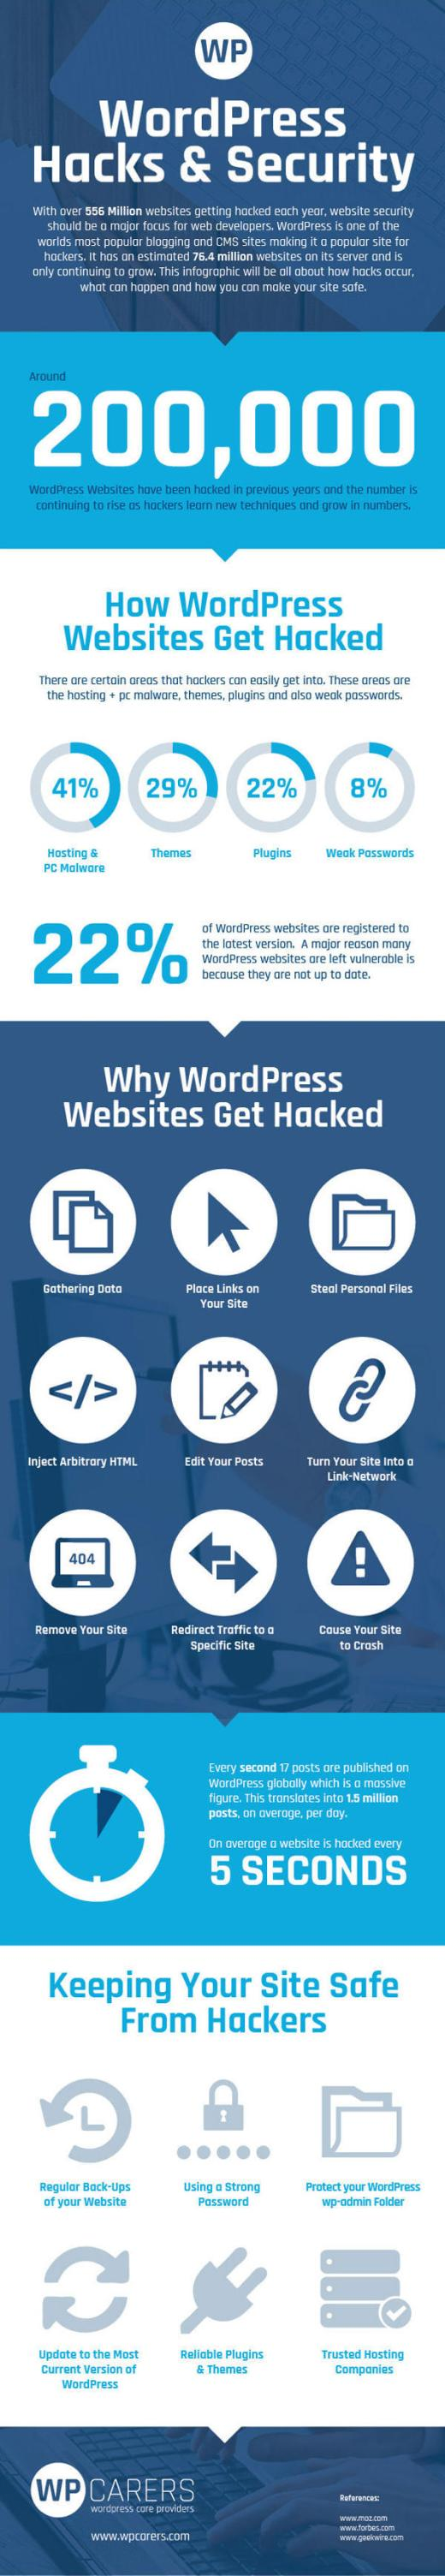 WordPress Hacks and Security